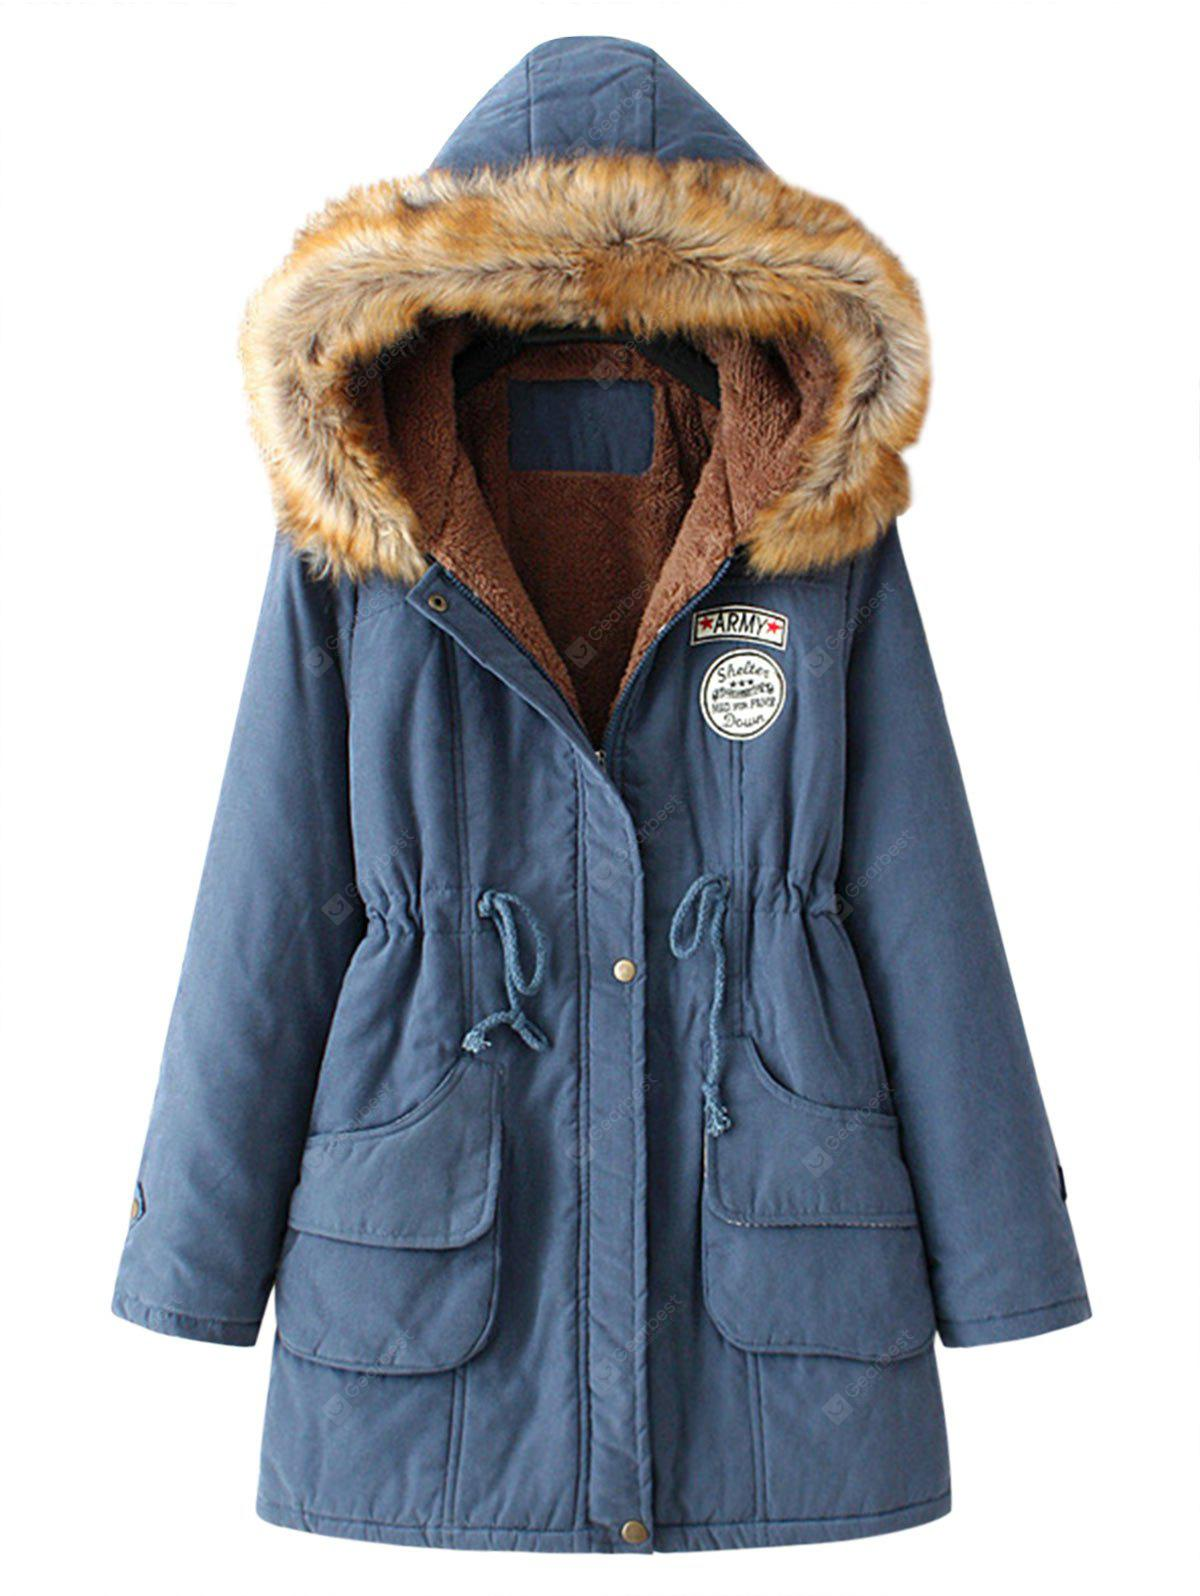 CADETBLUE 2XL Fur Collar Snap Button Parka Coat